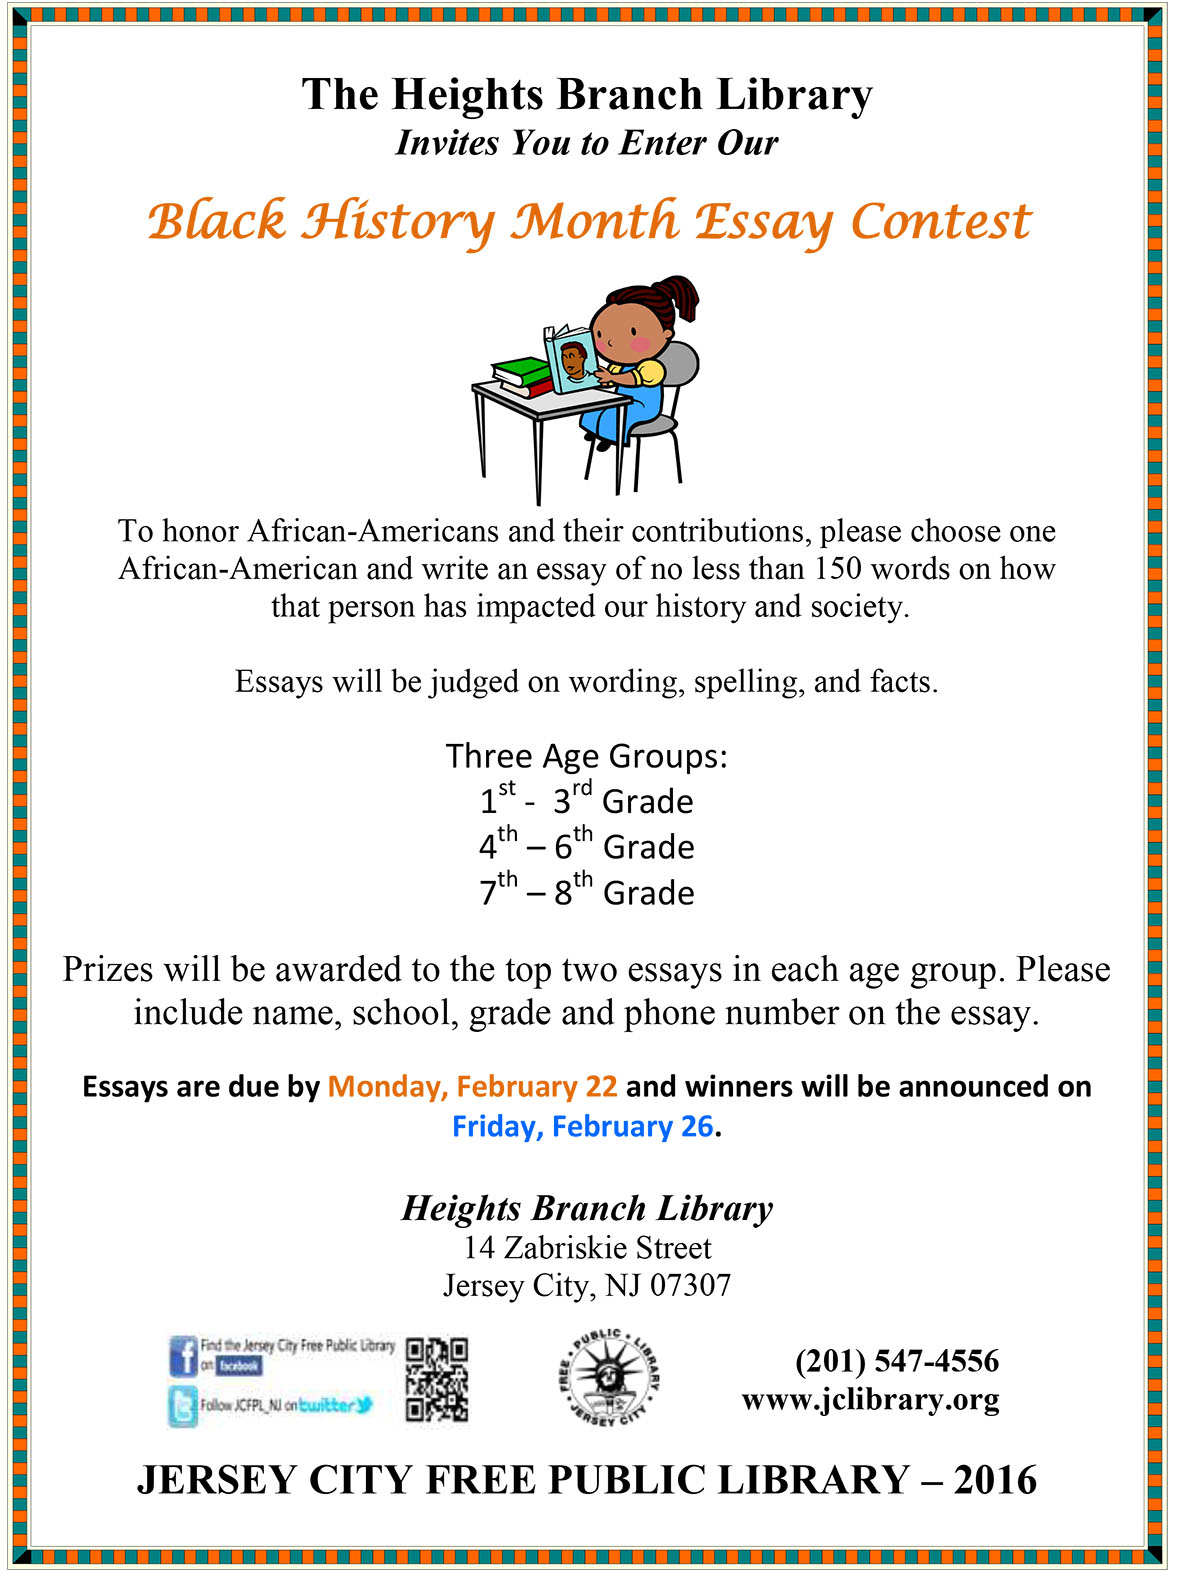 Essay About Global Warming Black History Month Essay Contest The Office Of Cultural Affairs Event  Navigation Benefits Of Stem Cell Research Essay also Example Of A Personal Essay For College Cultural Essays Black History Month Essay Contest The Office Of  Essays On Cancer